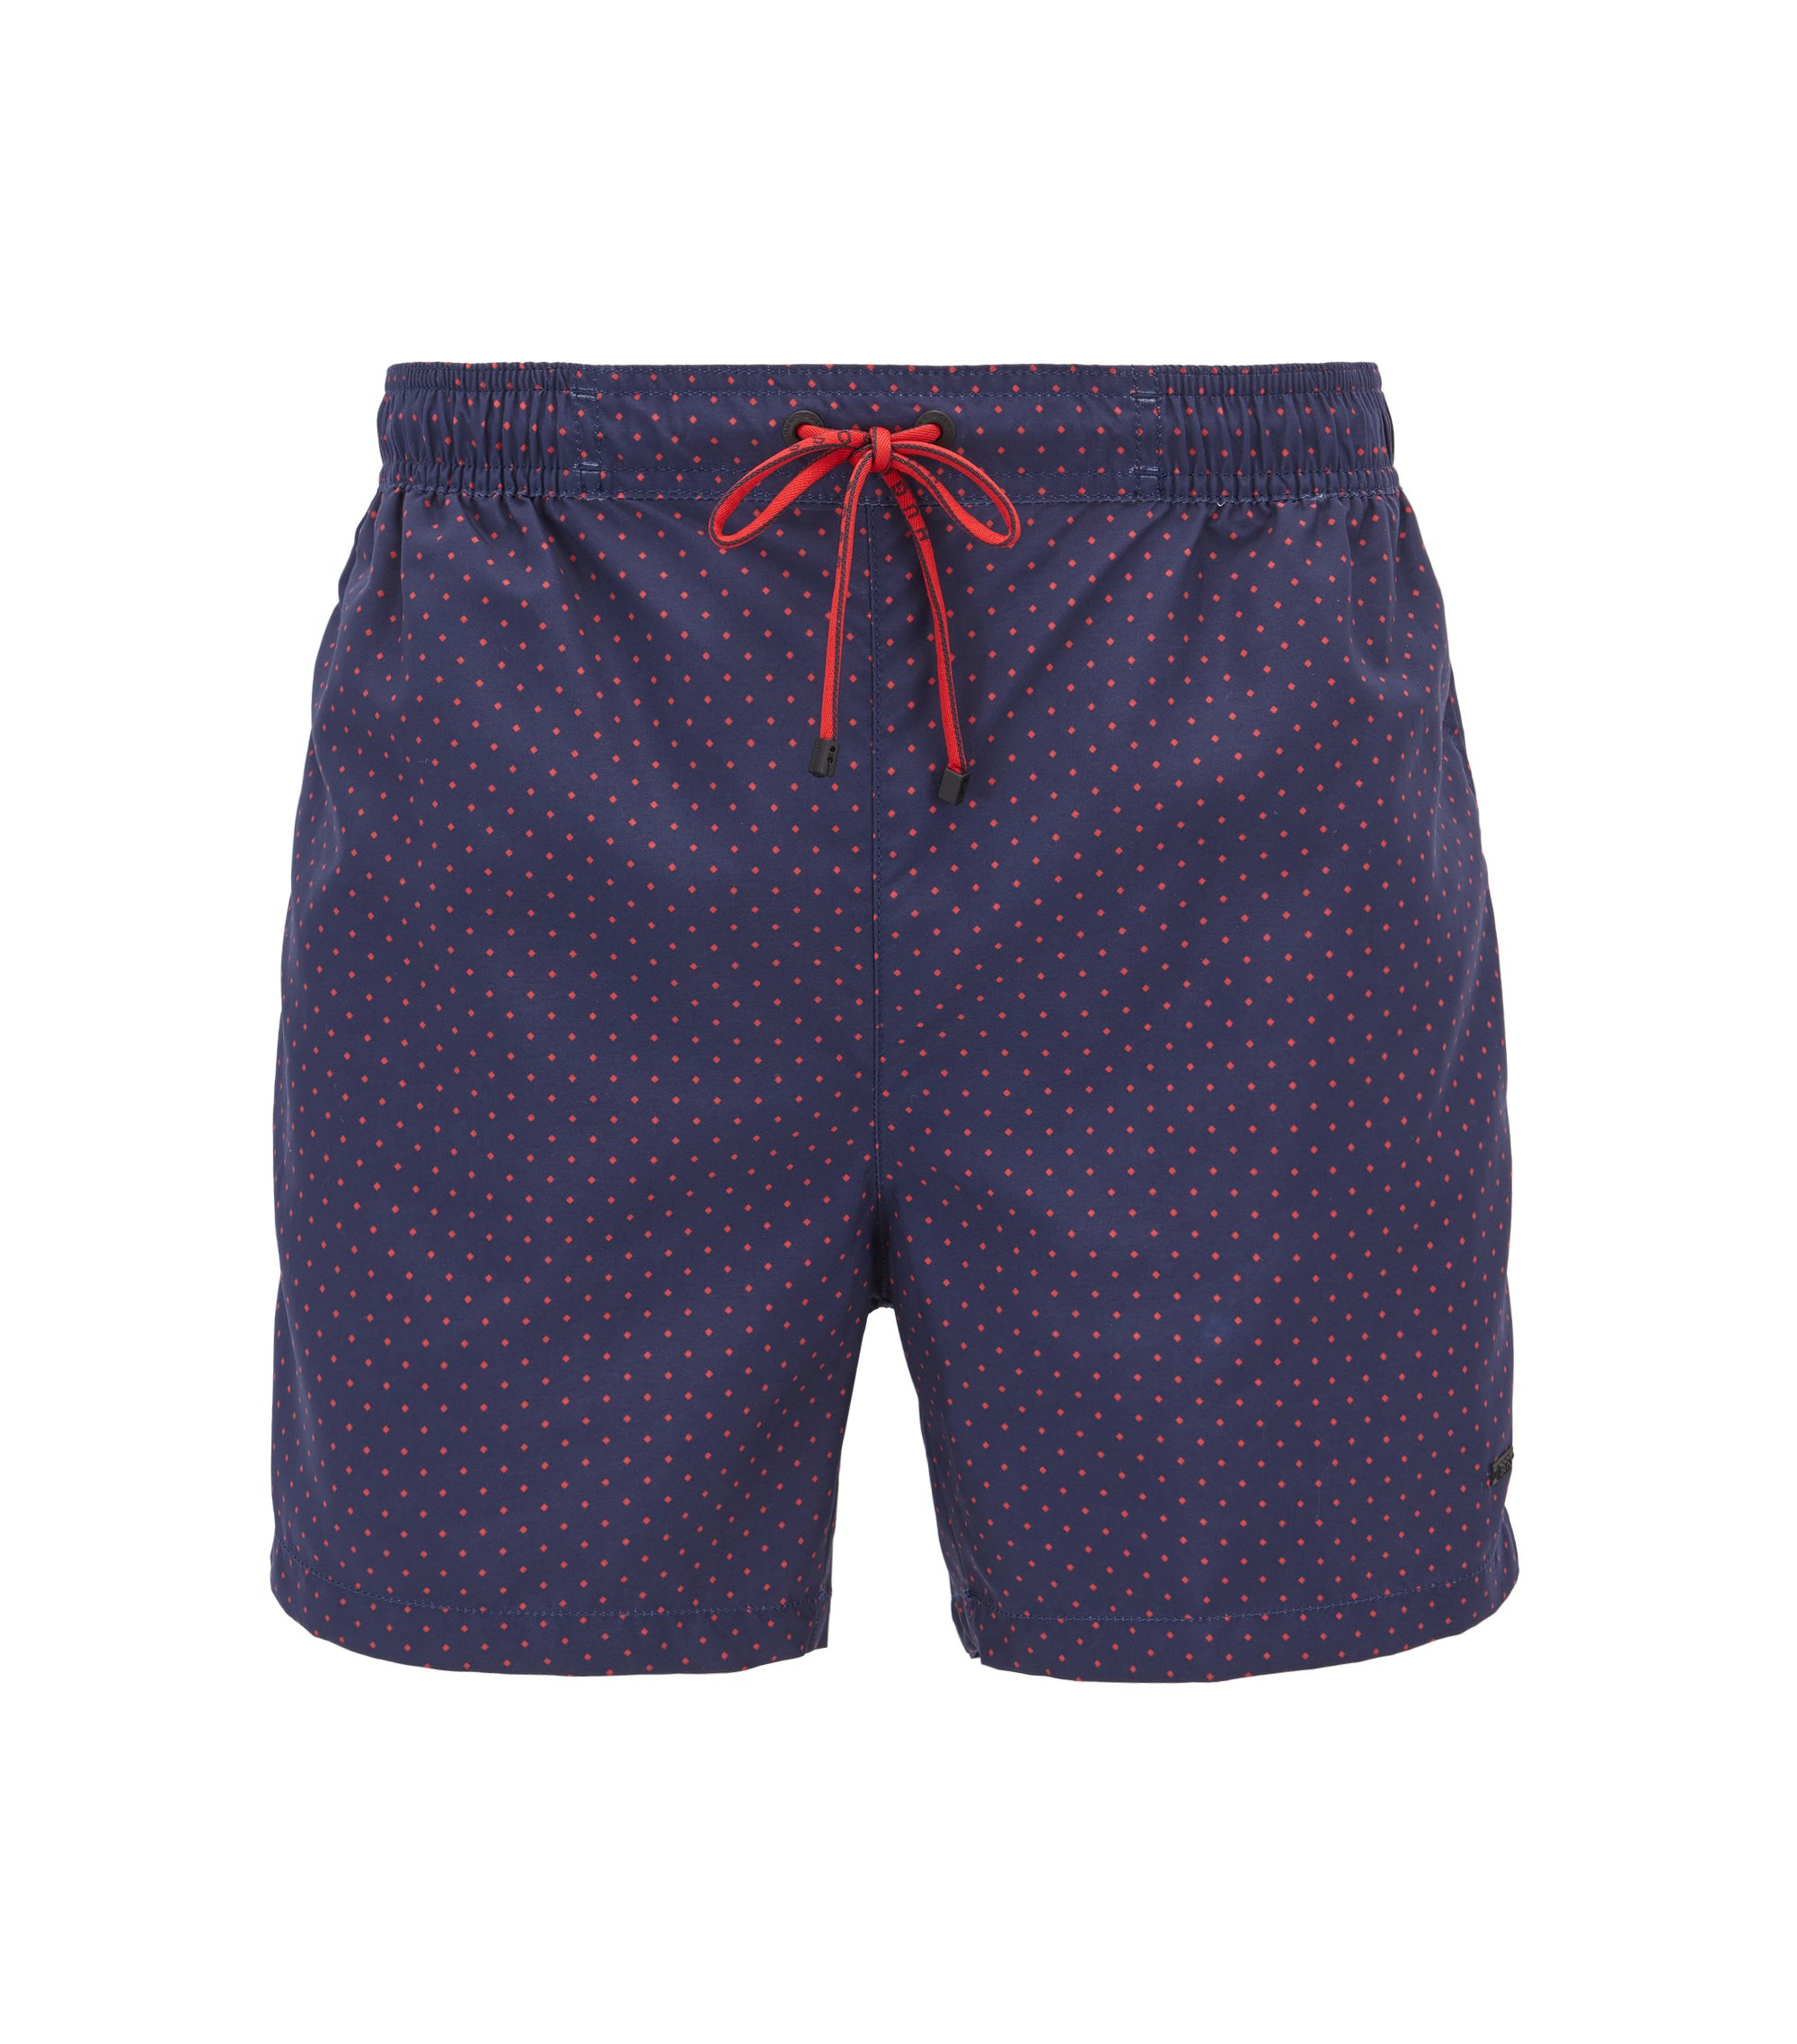 Square-Print Quick Dry Swim Trunk | Boxfish, Open Blue